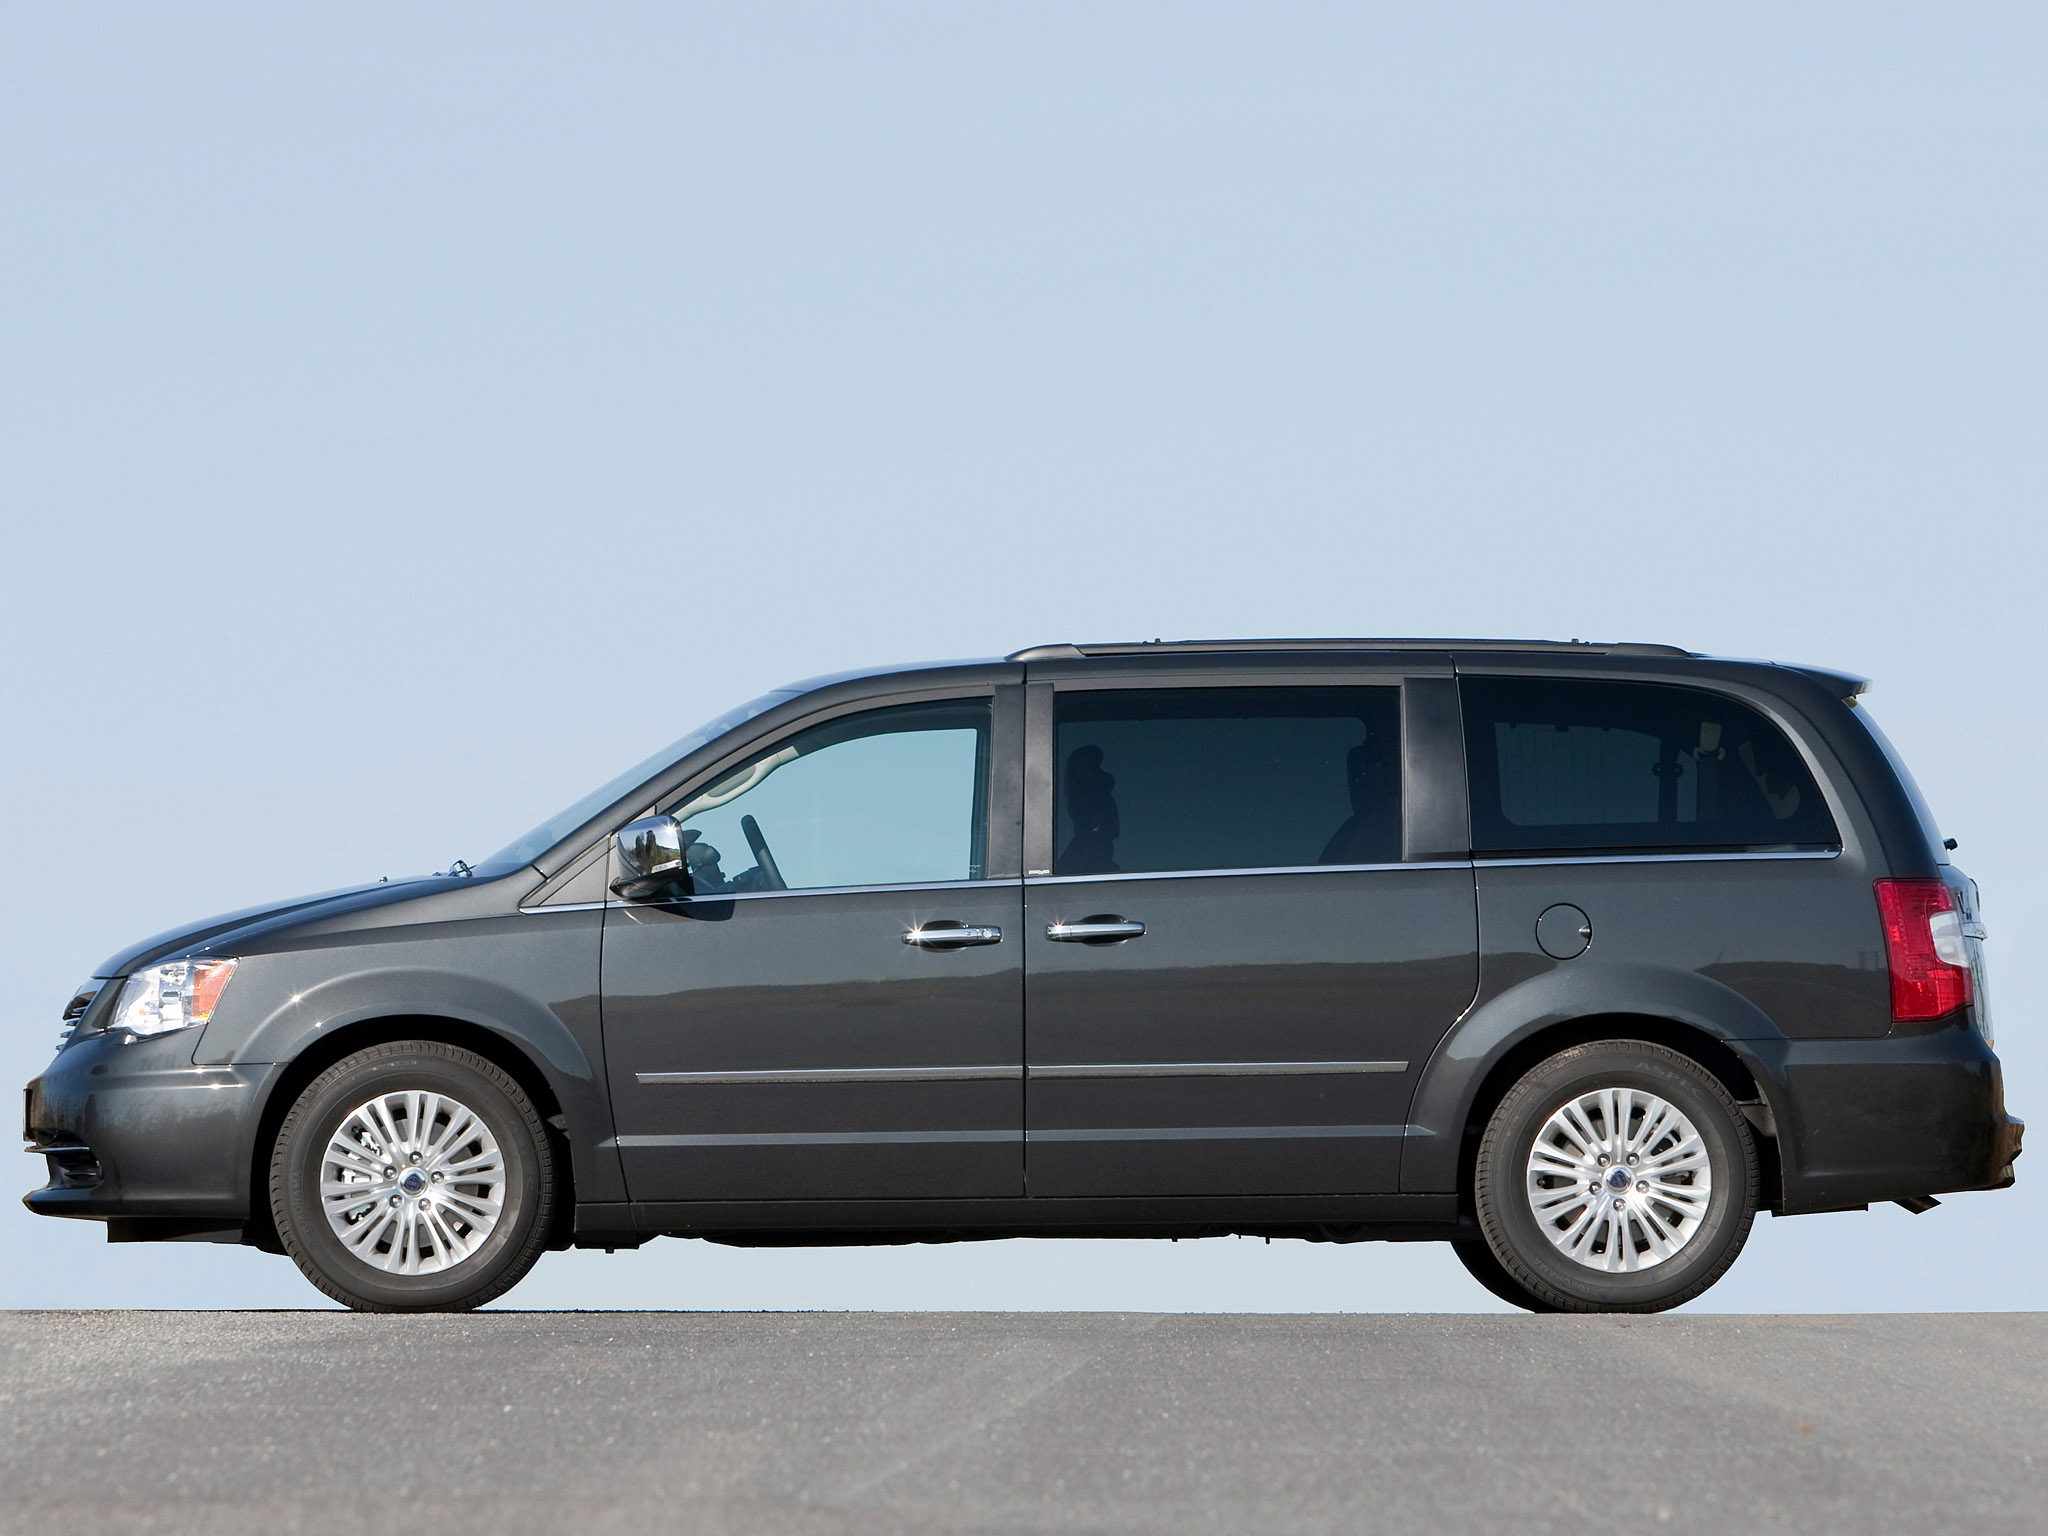 lancia grand voyager 2011 lancia grand voyager 2011 photo 16 car in pictures car photo gallery. Black Bedroom Furniture Sets. Home Design Ideas